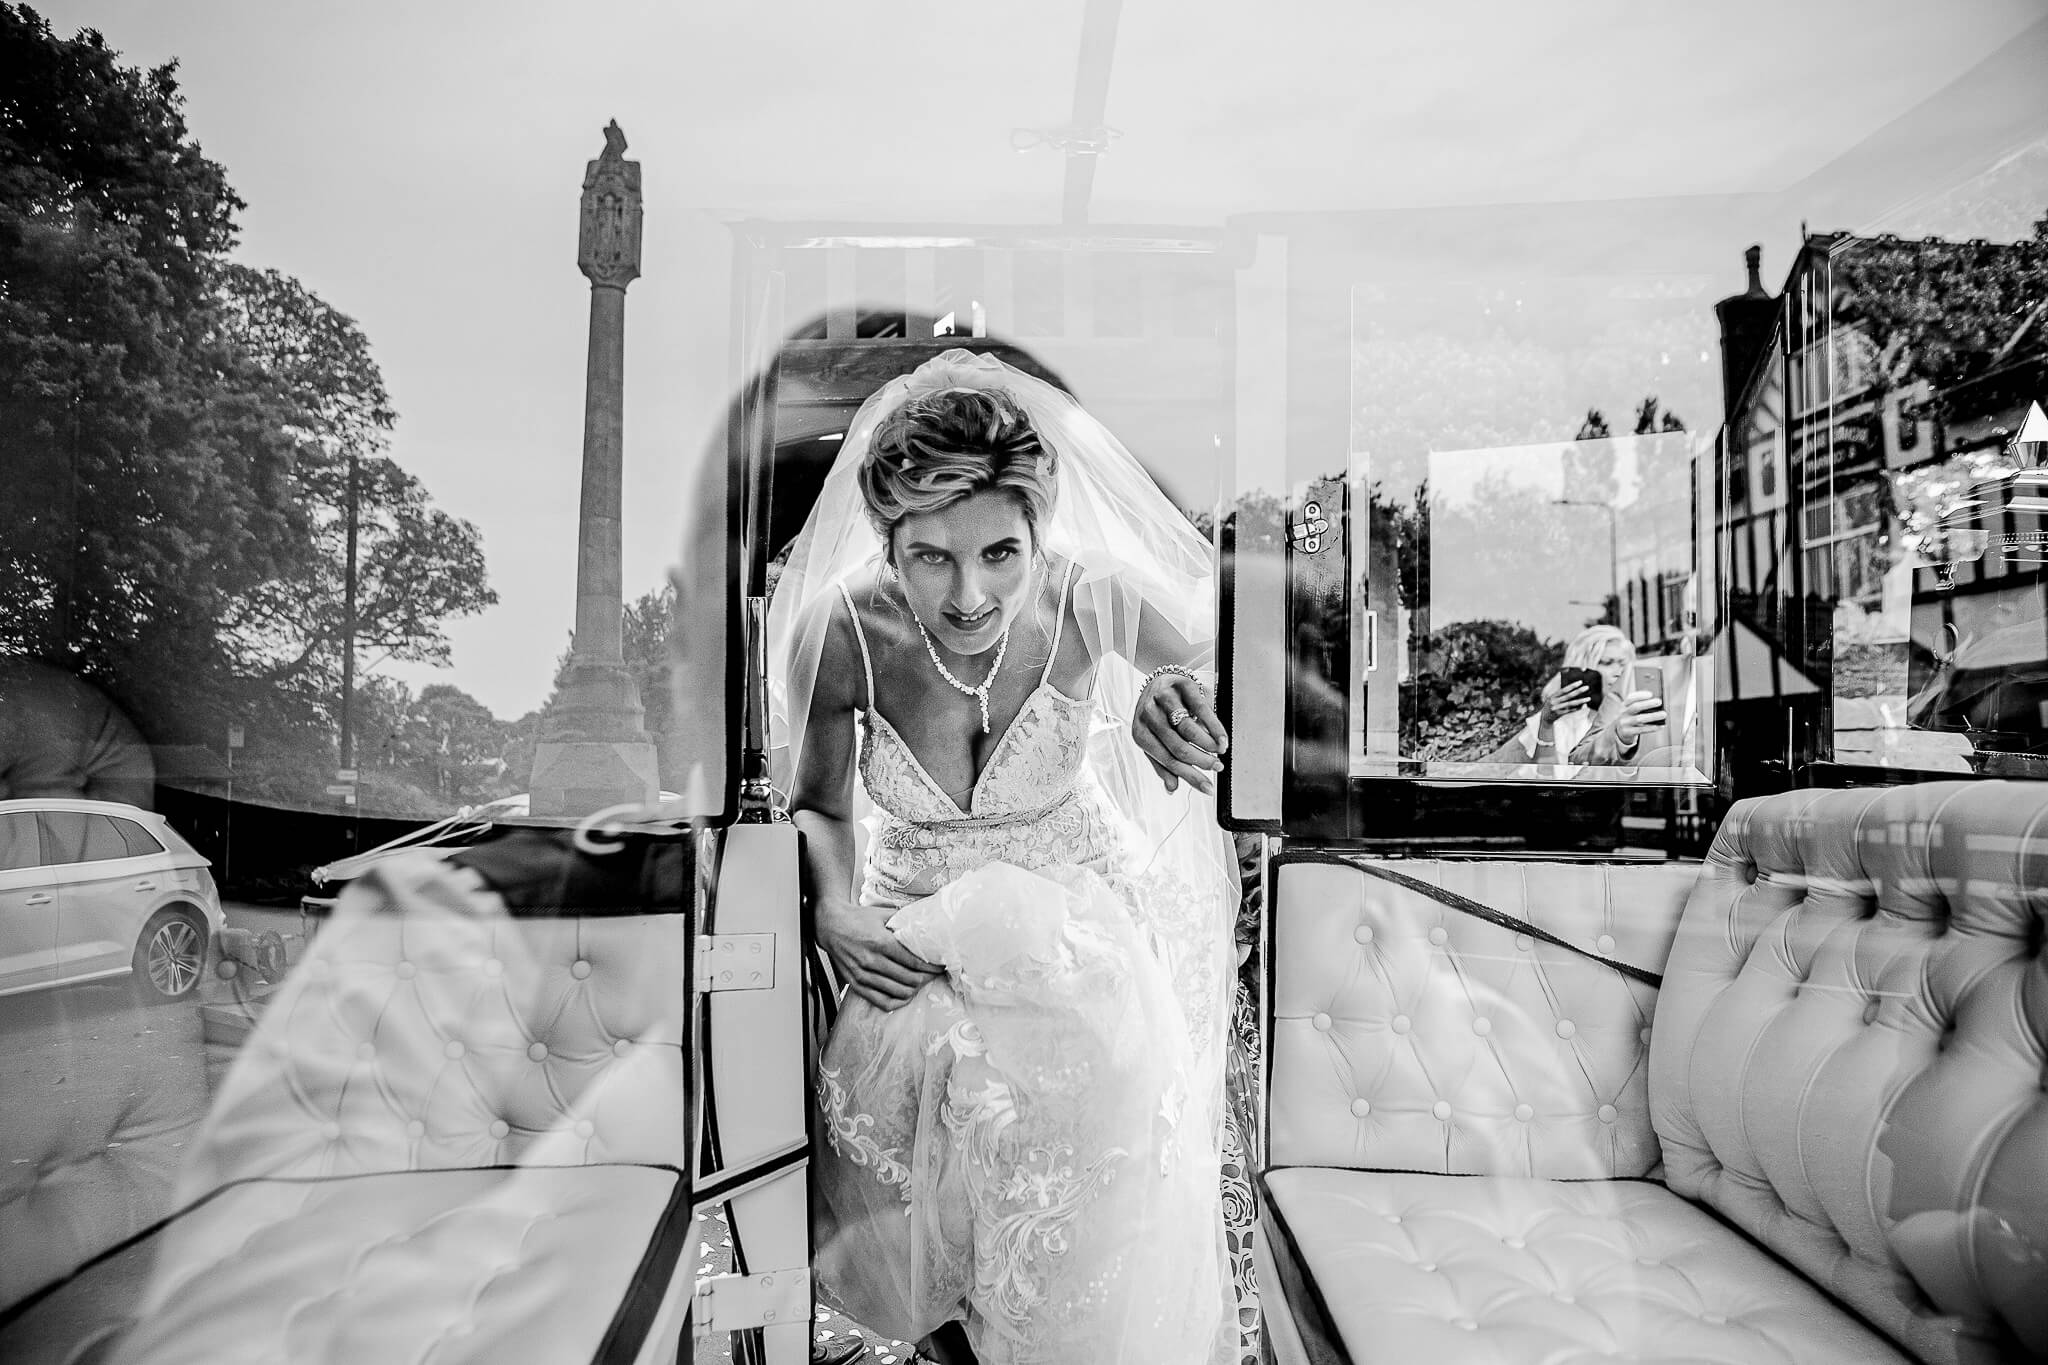 best-wedding-photographers-uk-europe-stanbury-photography-079